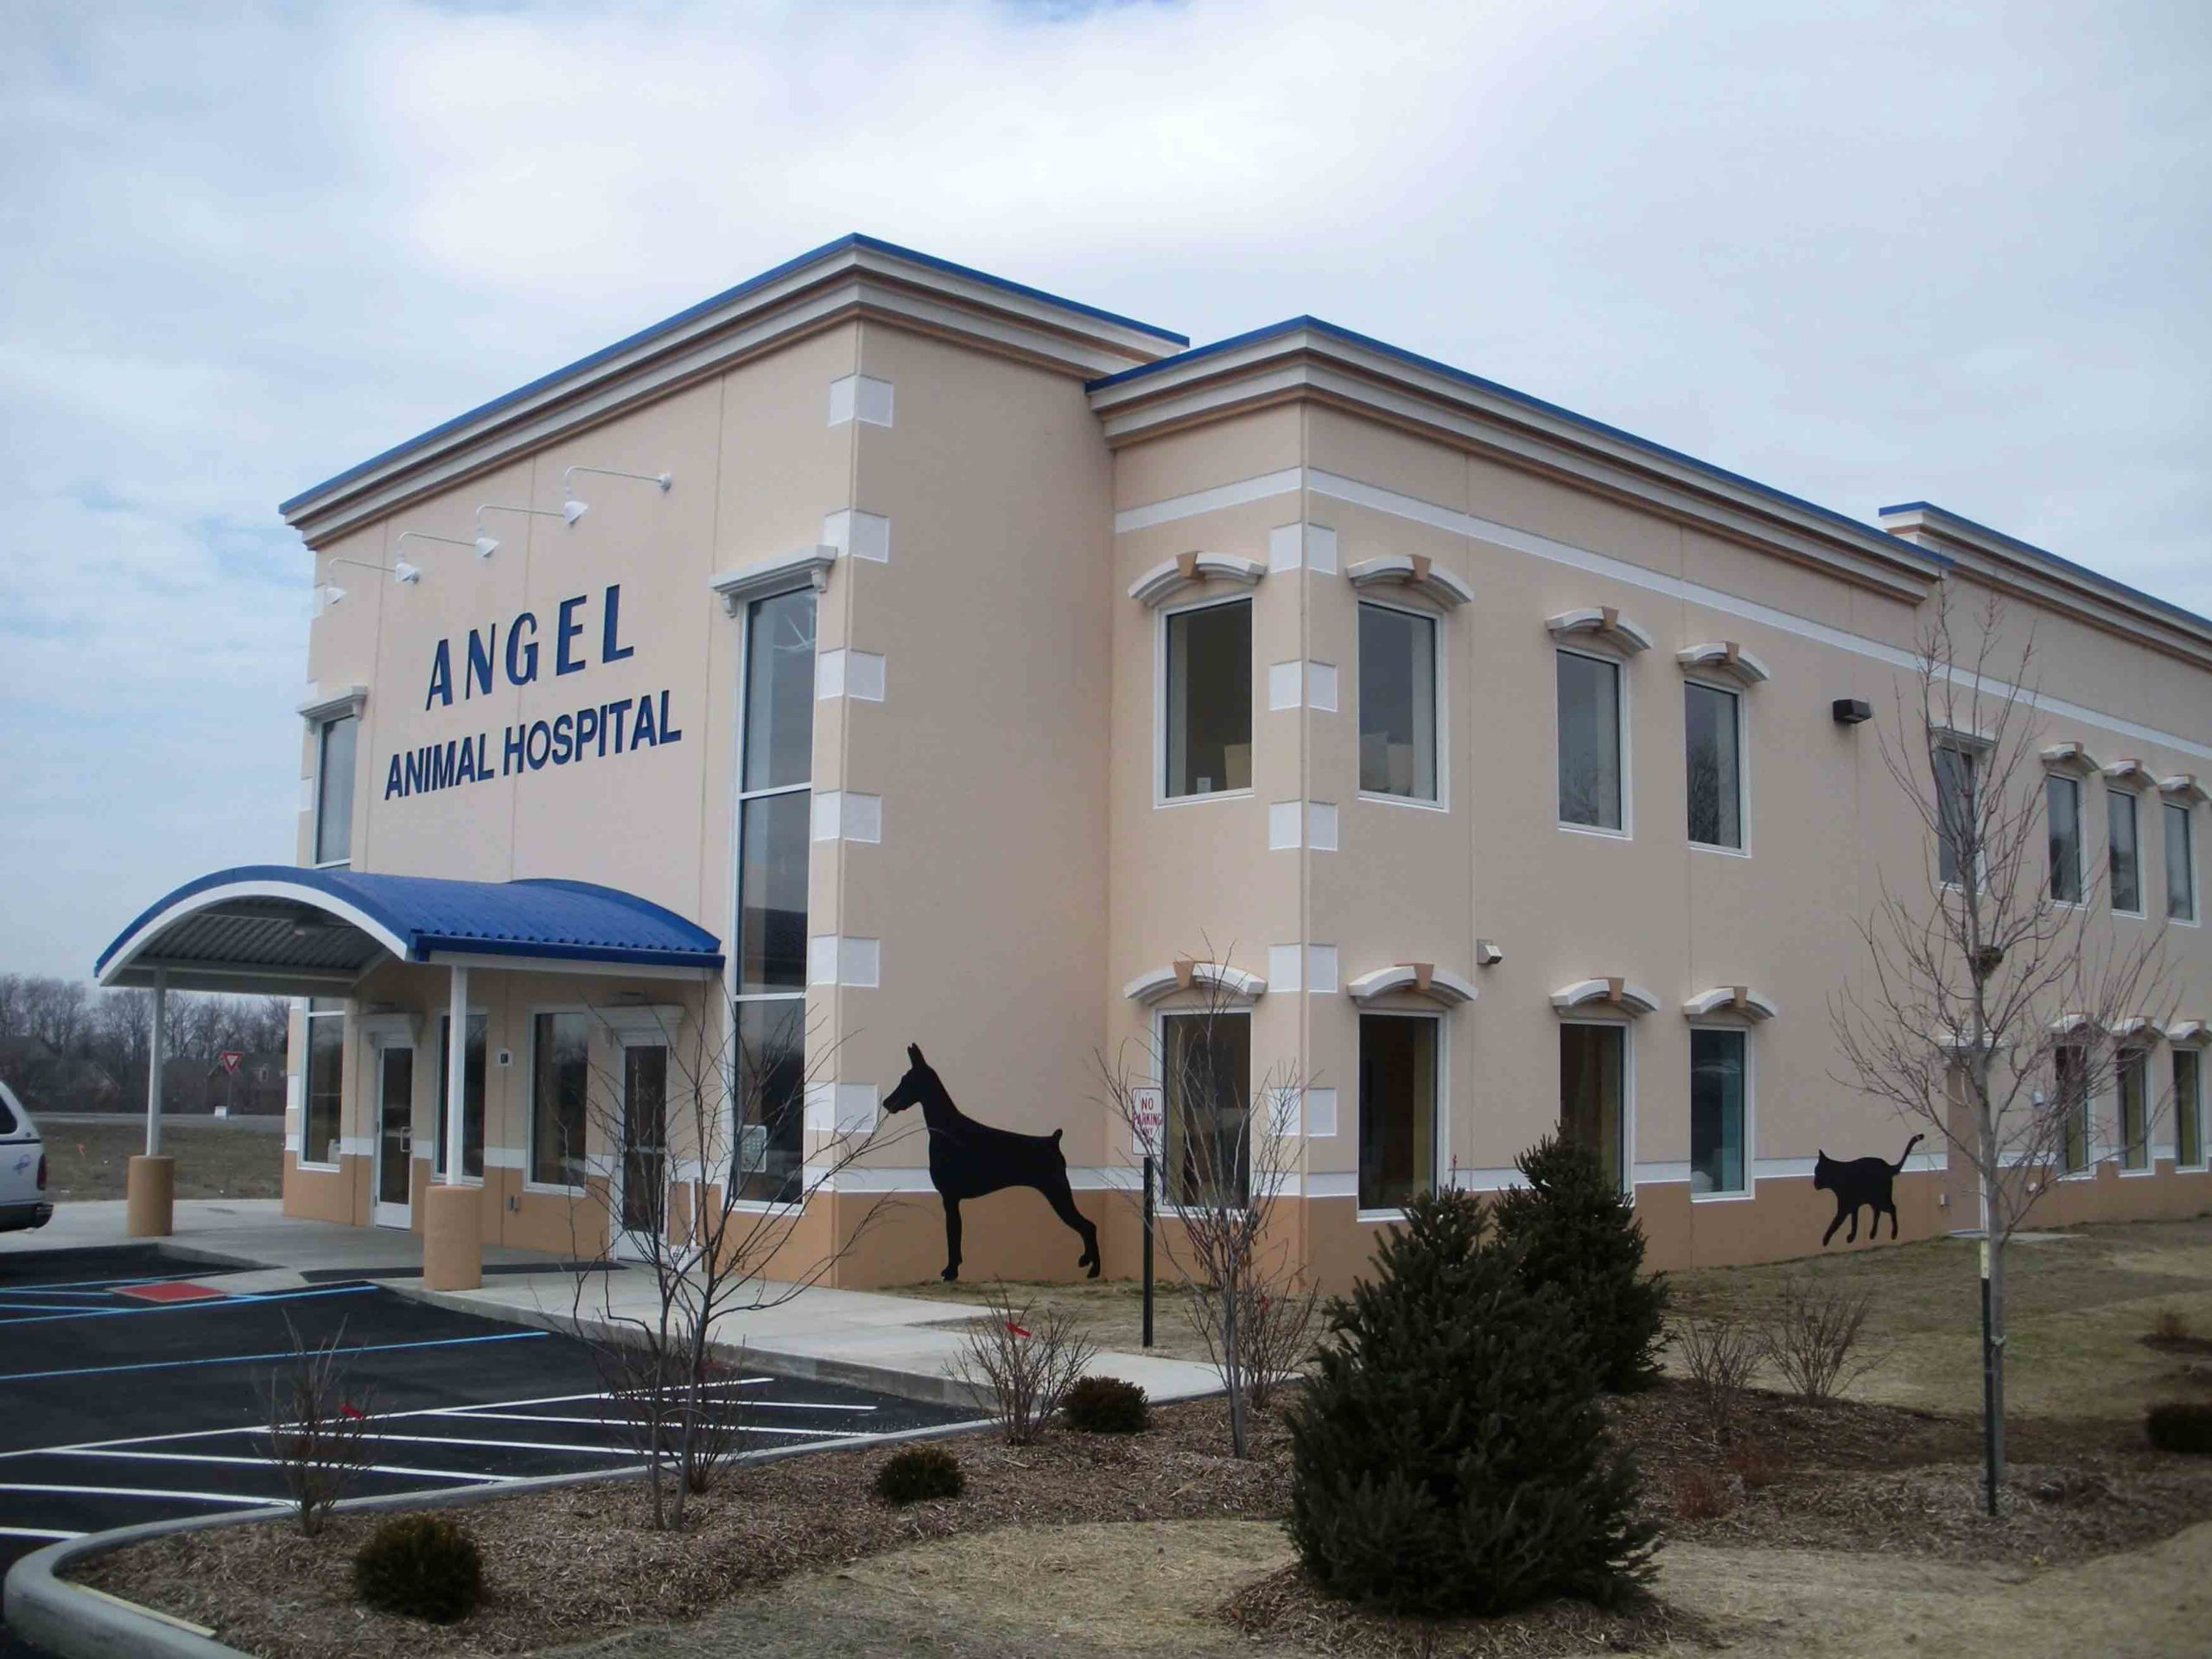 Angel Animal Hospital 2